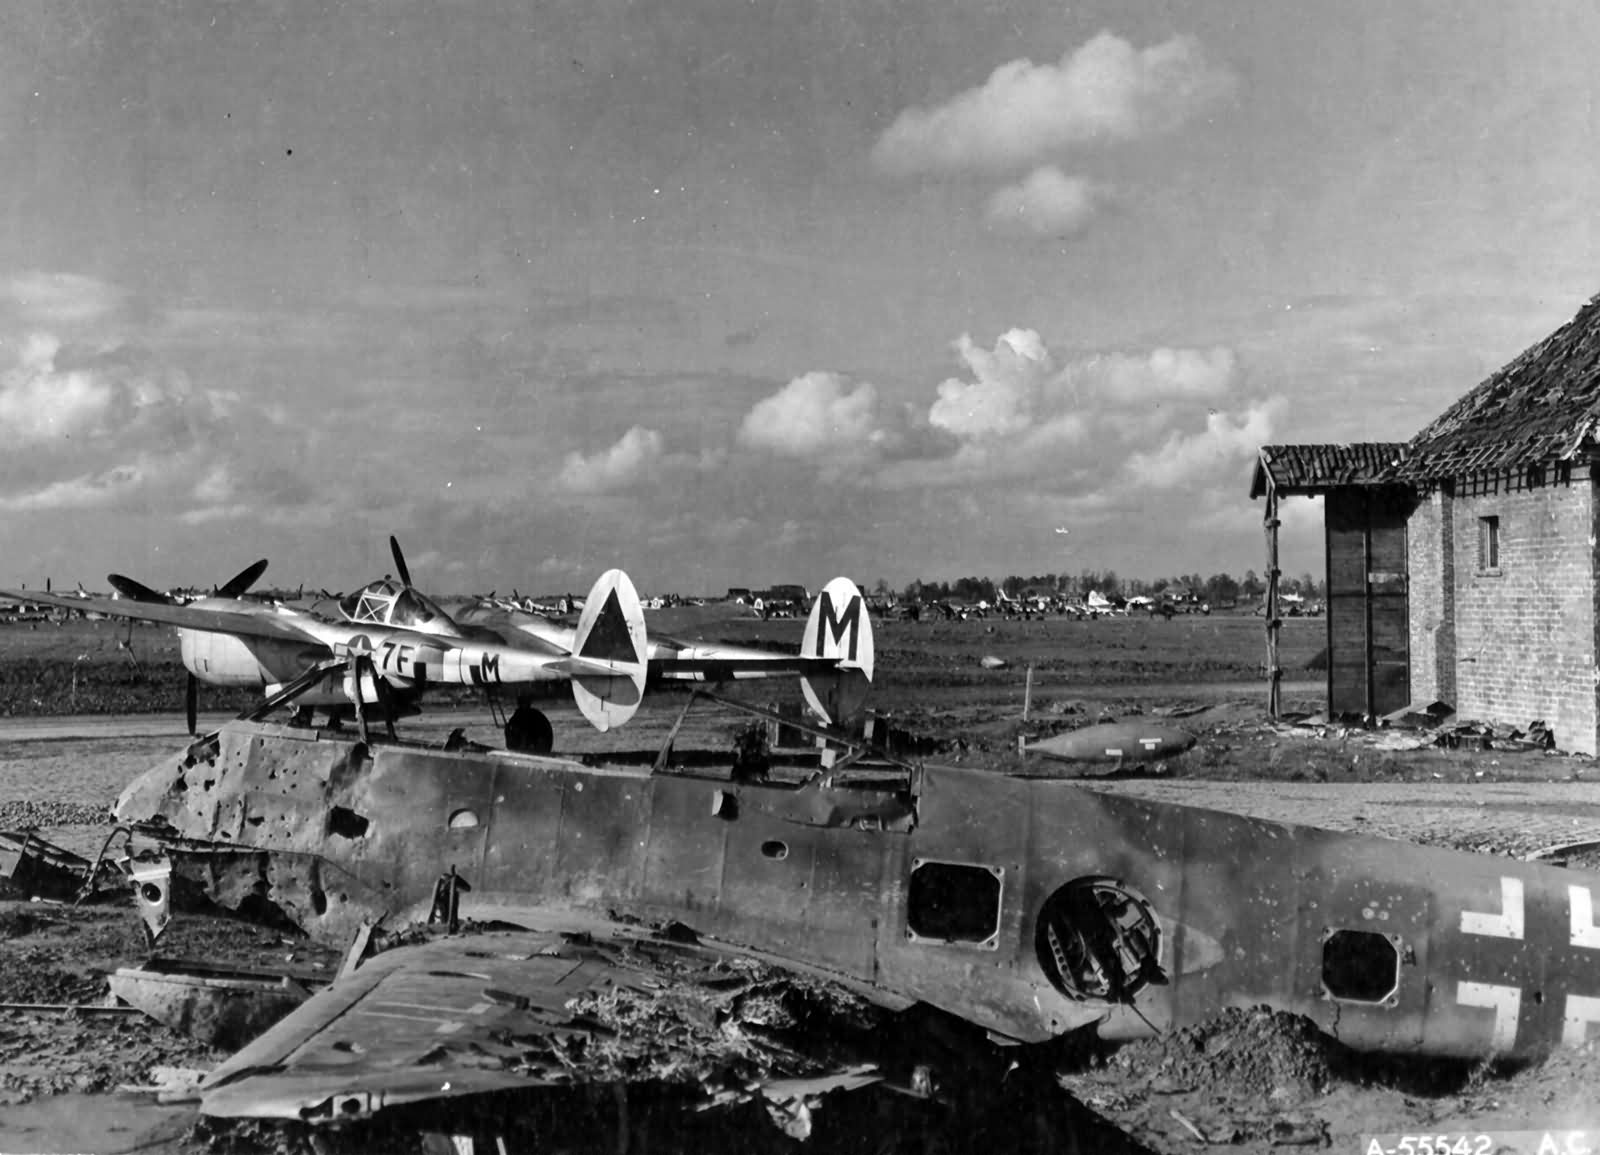 P-38J Lightning code 7F-M of the 485th FS 370th FG during their stay at Florennes Juzaine Airfield A 78 Belgium